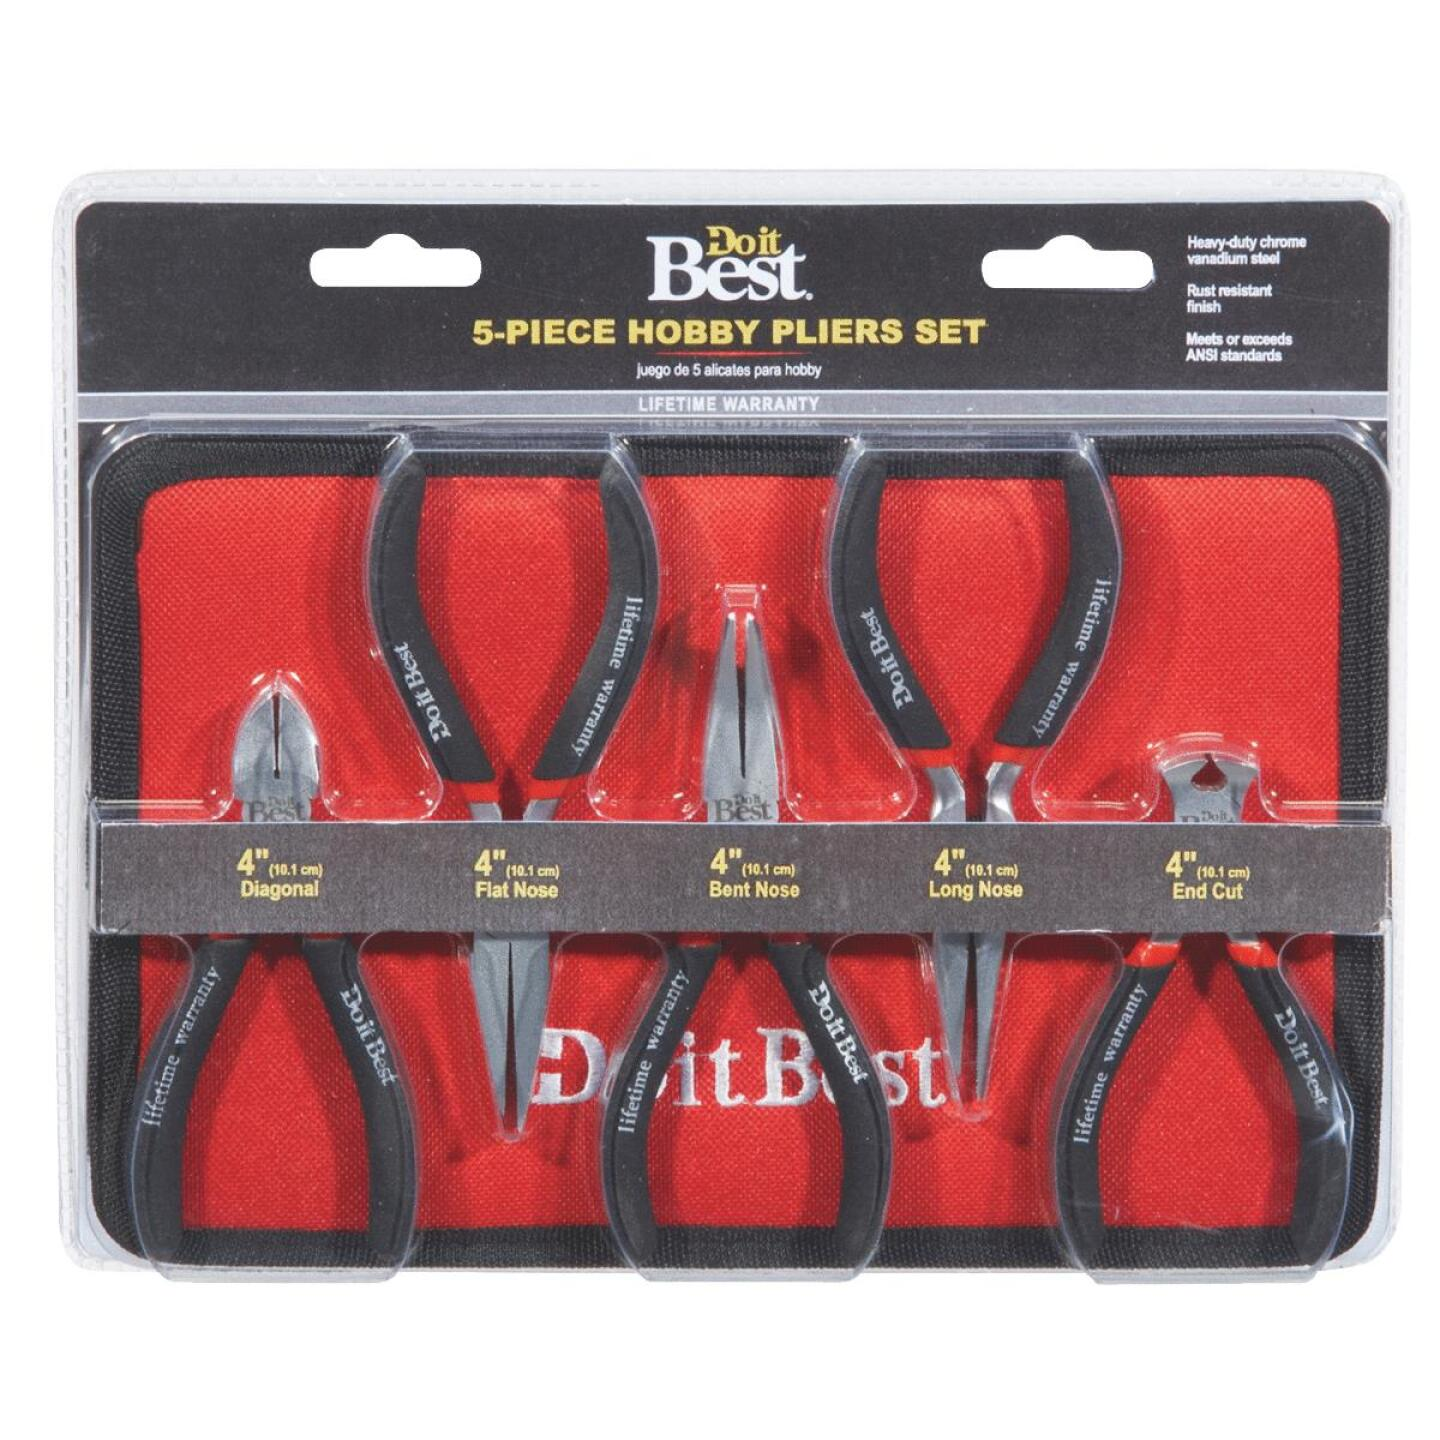 Do it Best Hobby Pliers Set (5 Piece) Image 3